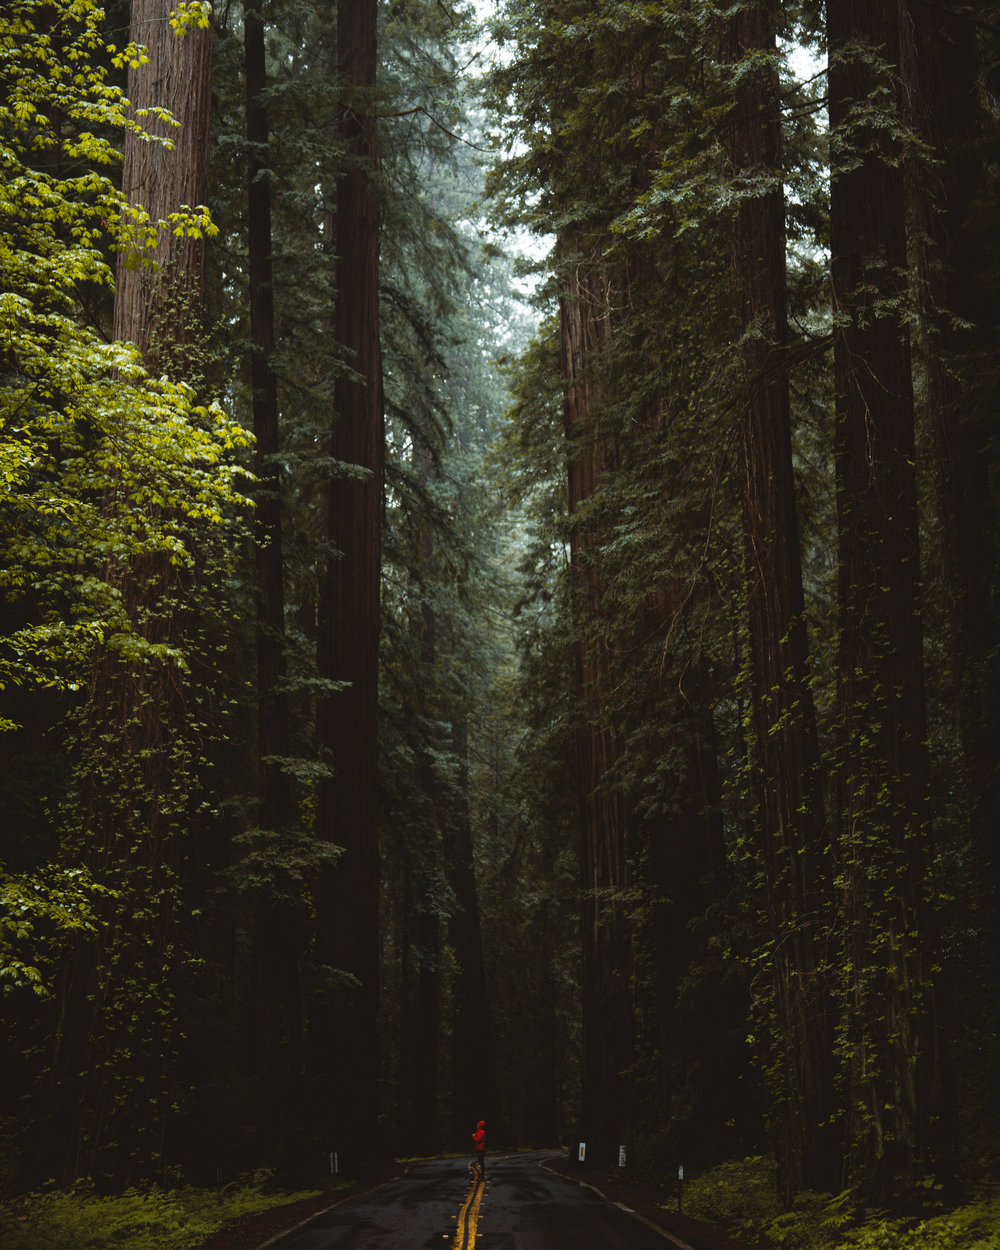 Avenue of the Giants, Redwood National Park